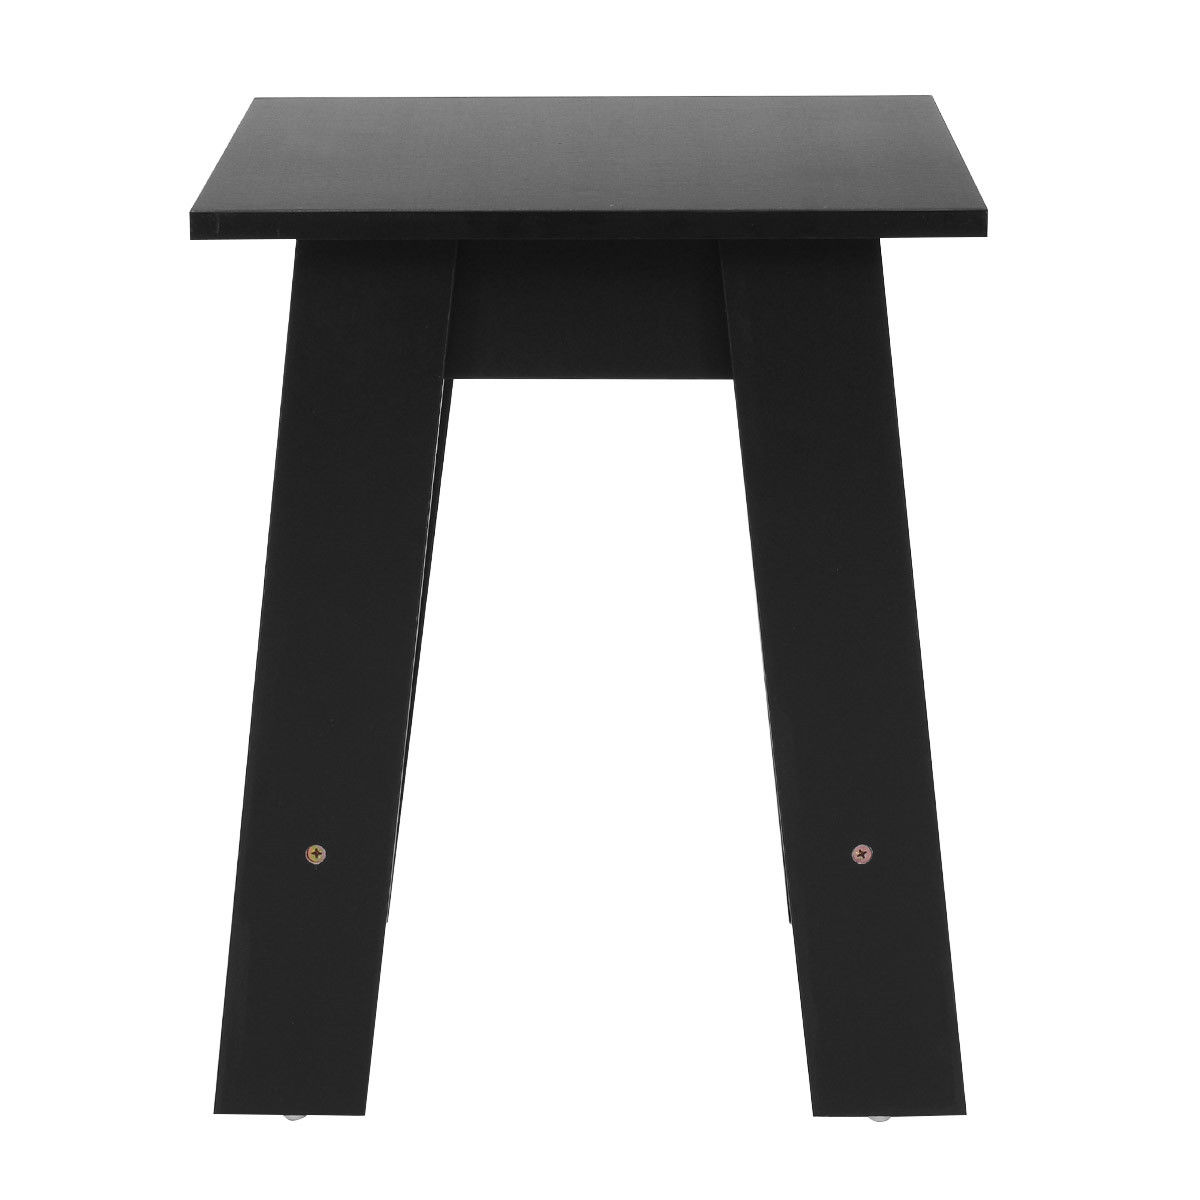 Giantex Modern Wood End Table Accent Coffee Table Simple Design Side Desk Table Living Room Furniture HW54815BK-in Coffee Tables from Furniture on ...